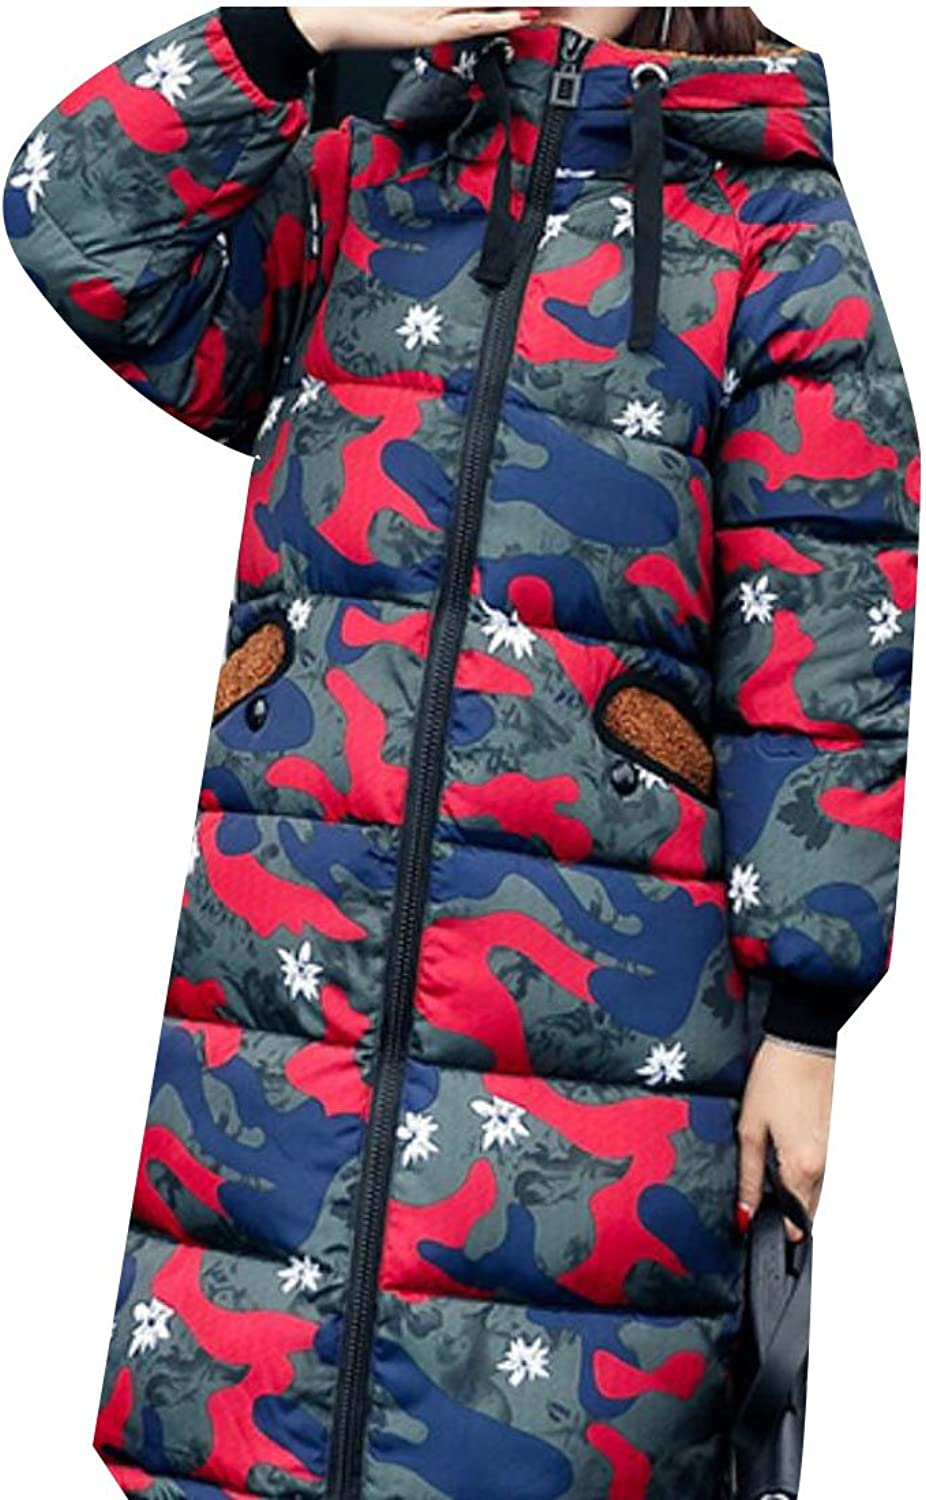 Gocgt Women's Winter Camo Print Hooded Down Outwear Jacket